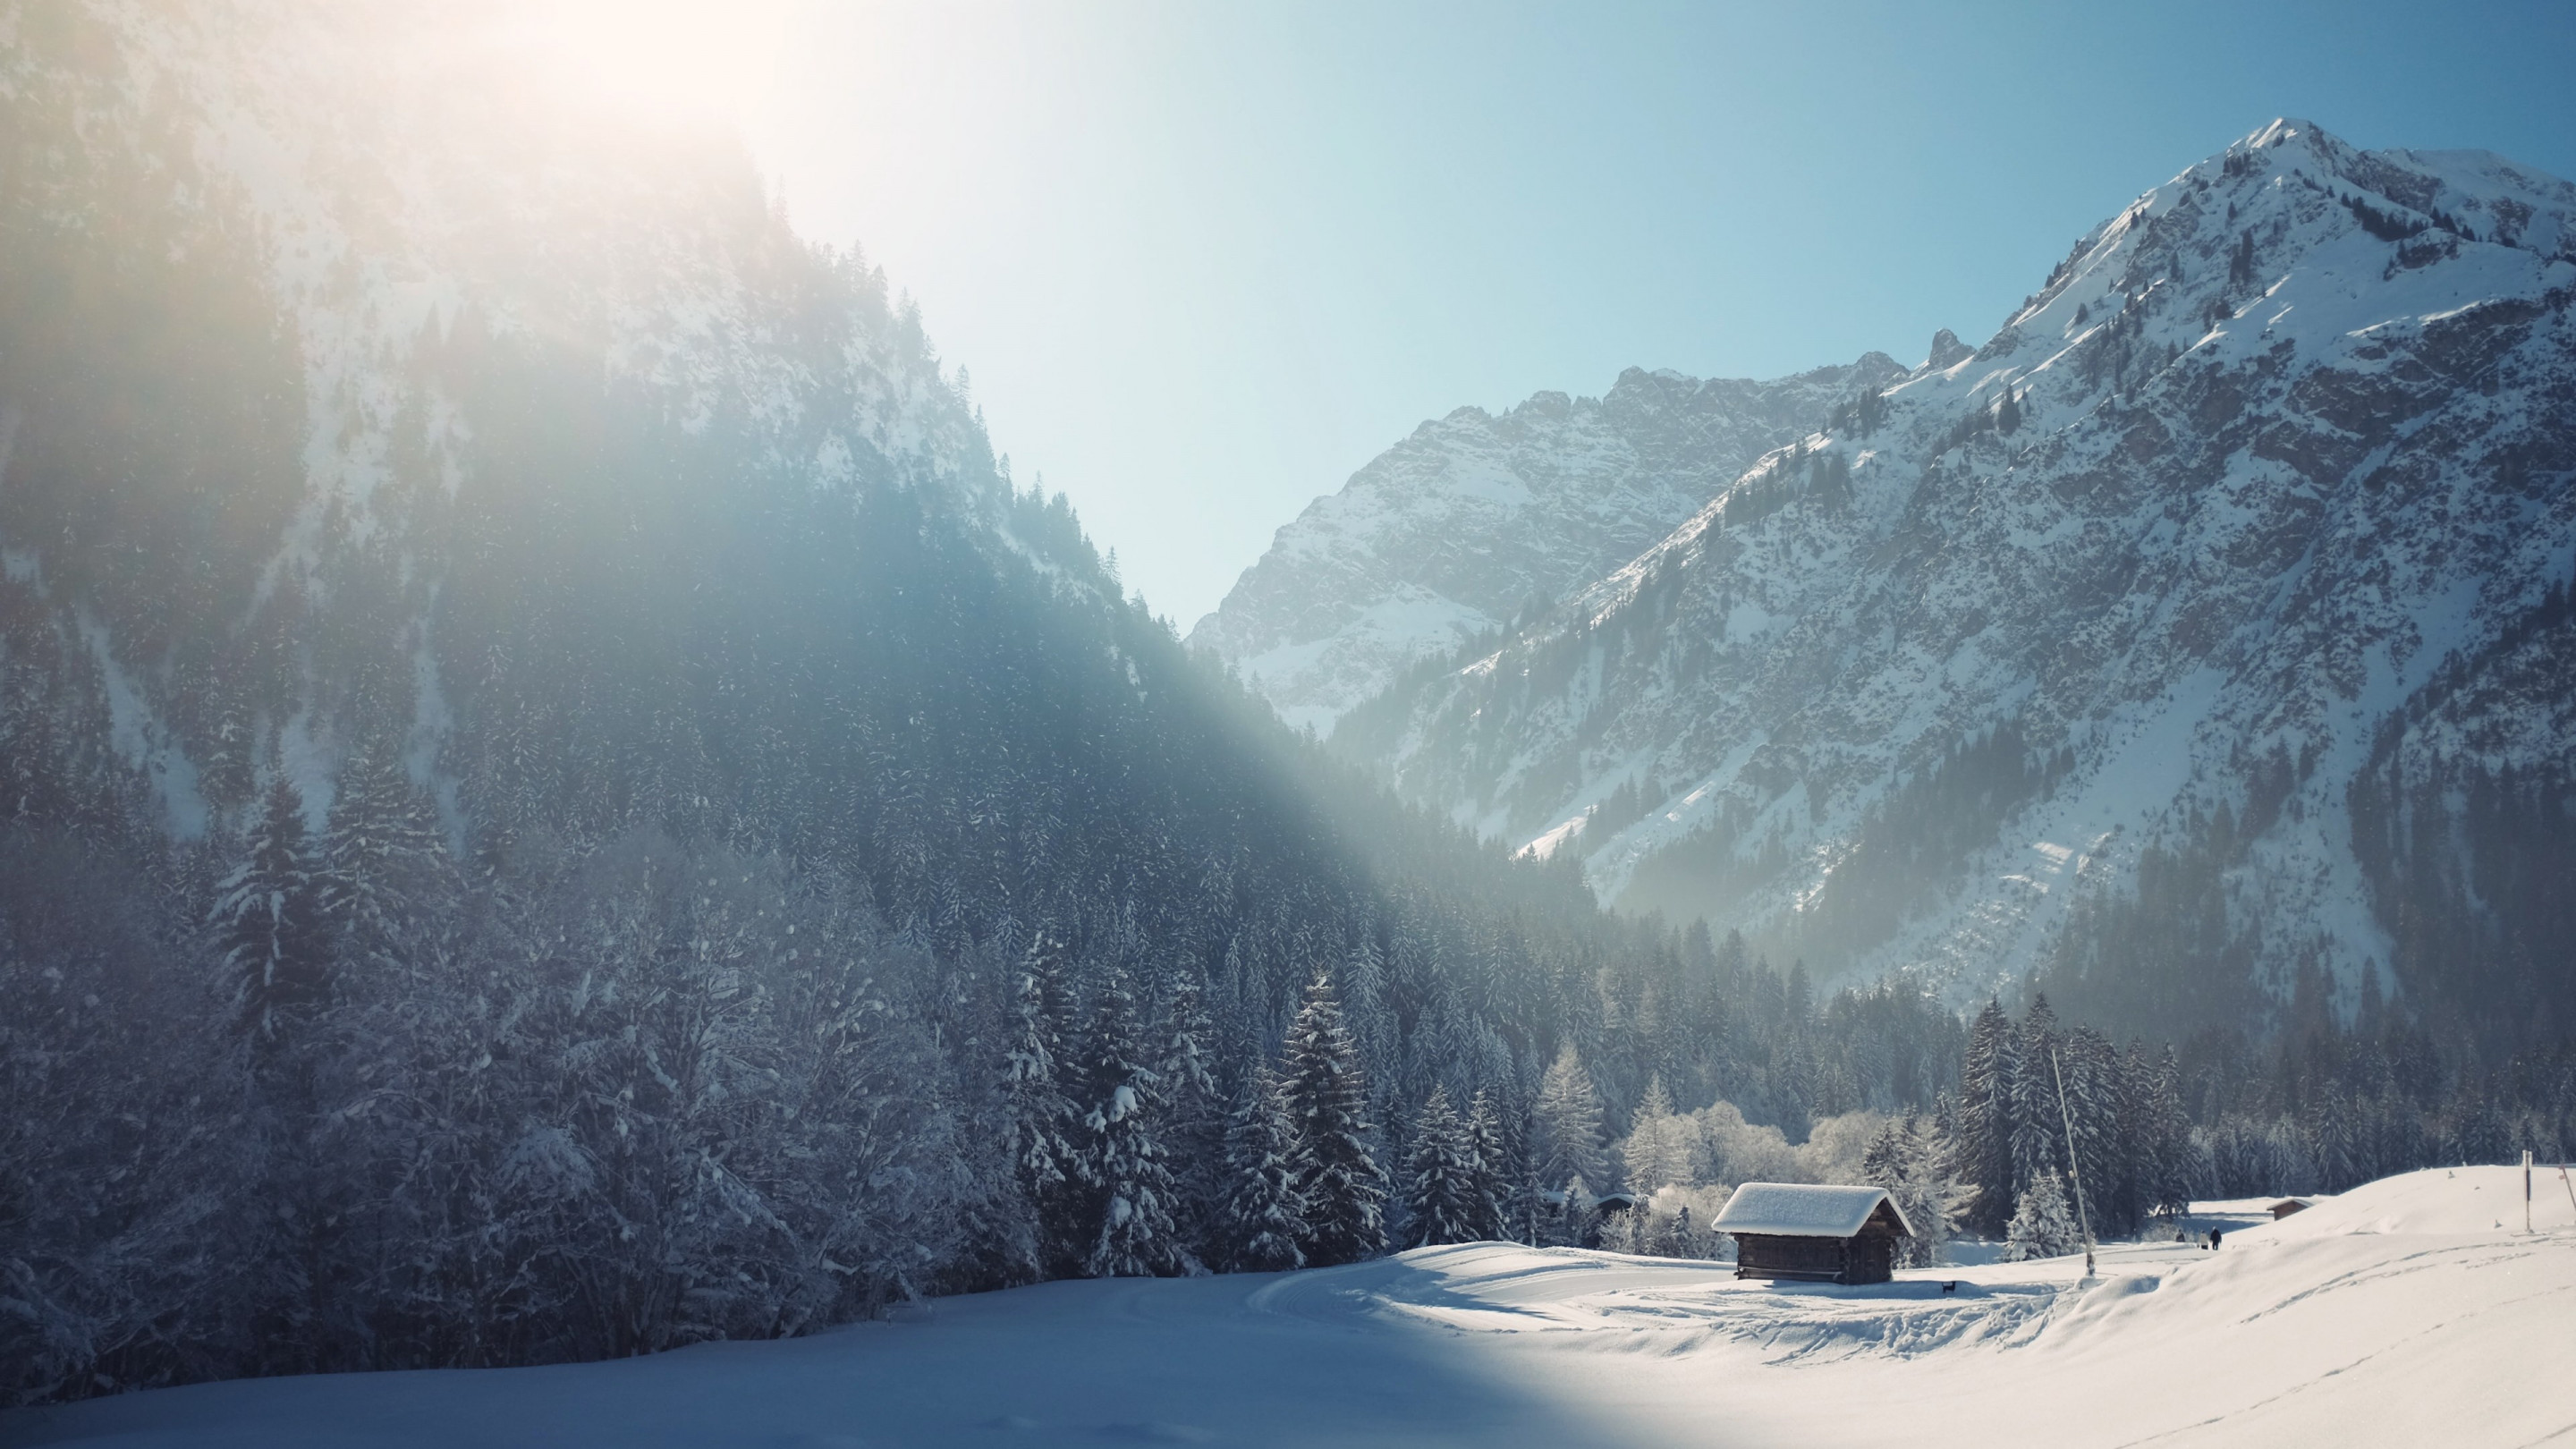 Cottage in Winter landscape | 2880x1620 wallpaper